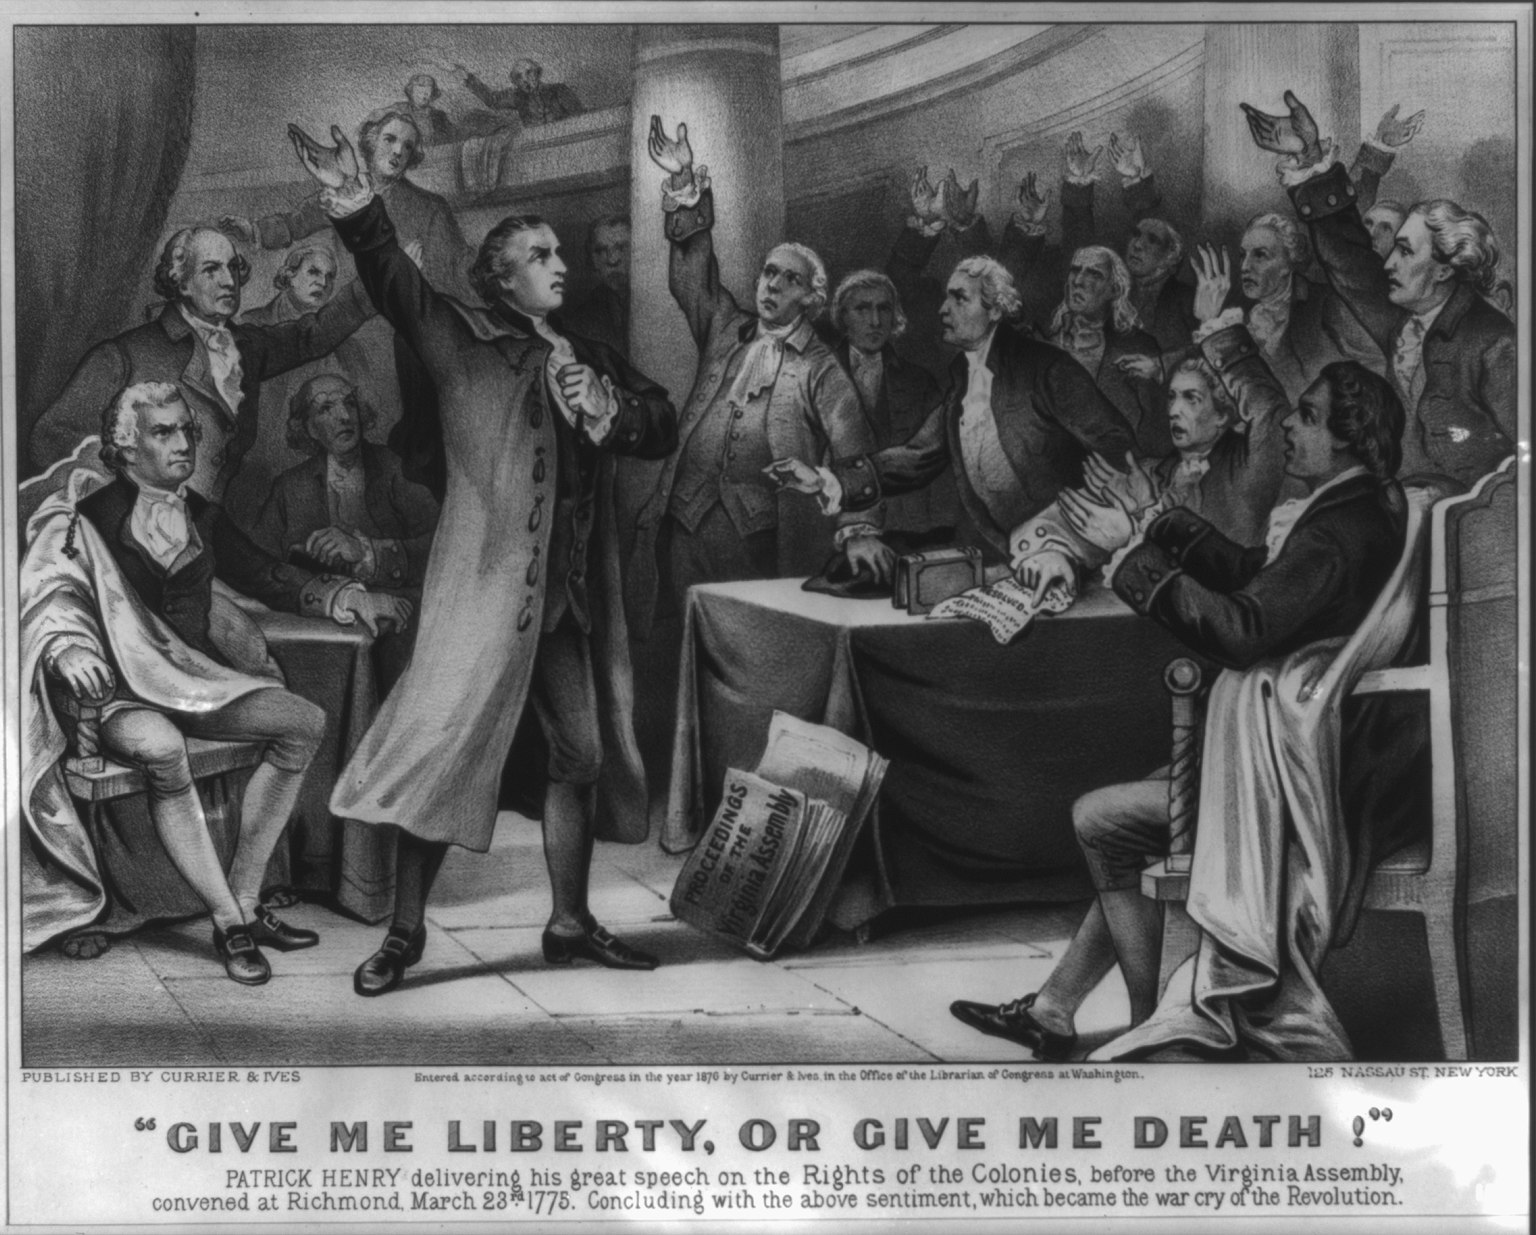 Currier & Ives depiction of Patrick Henry giving his